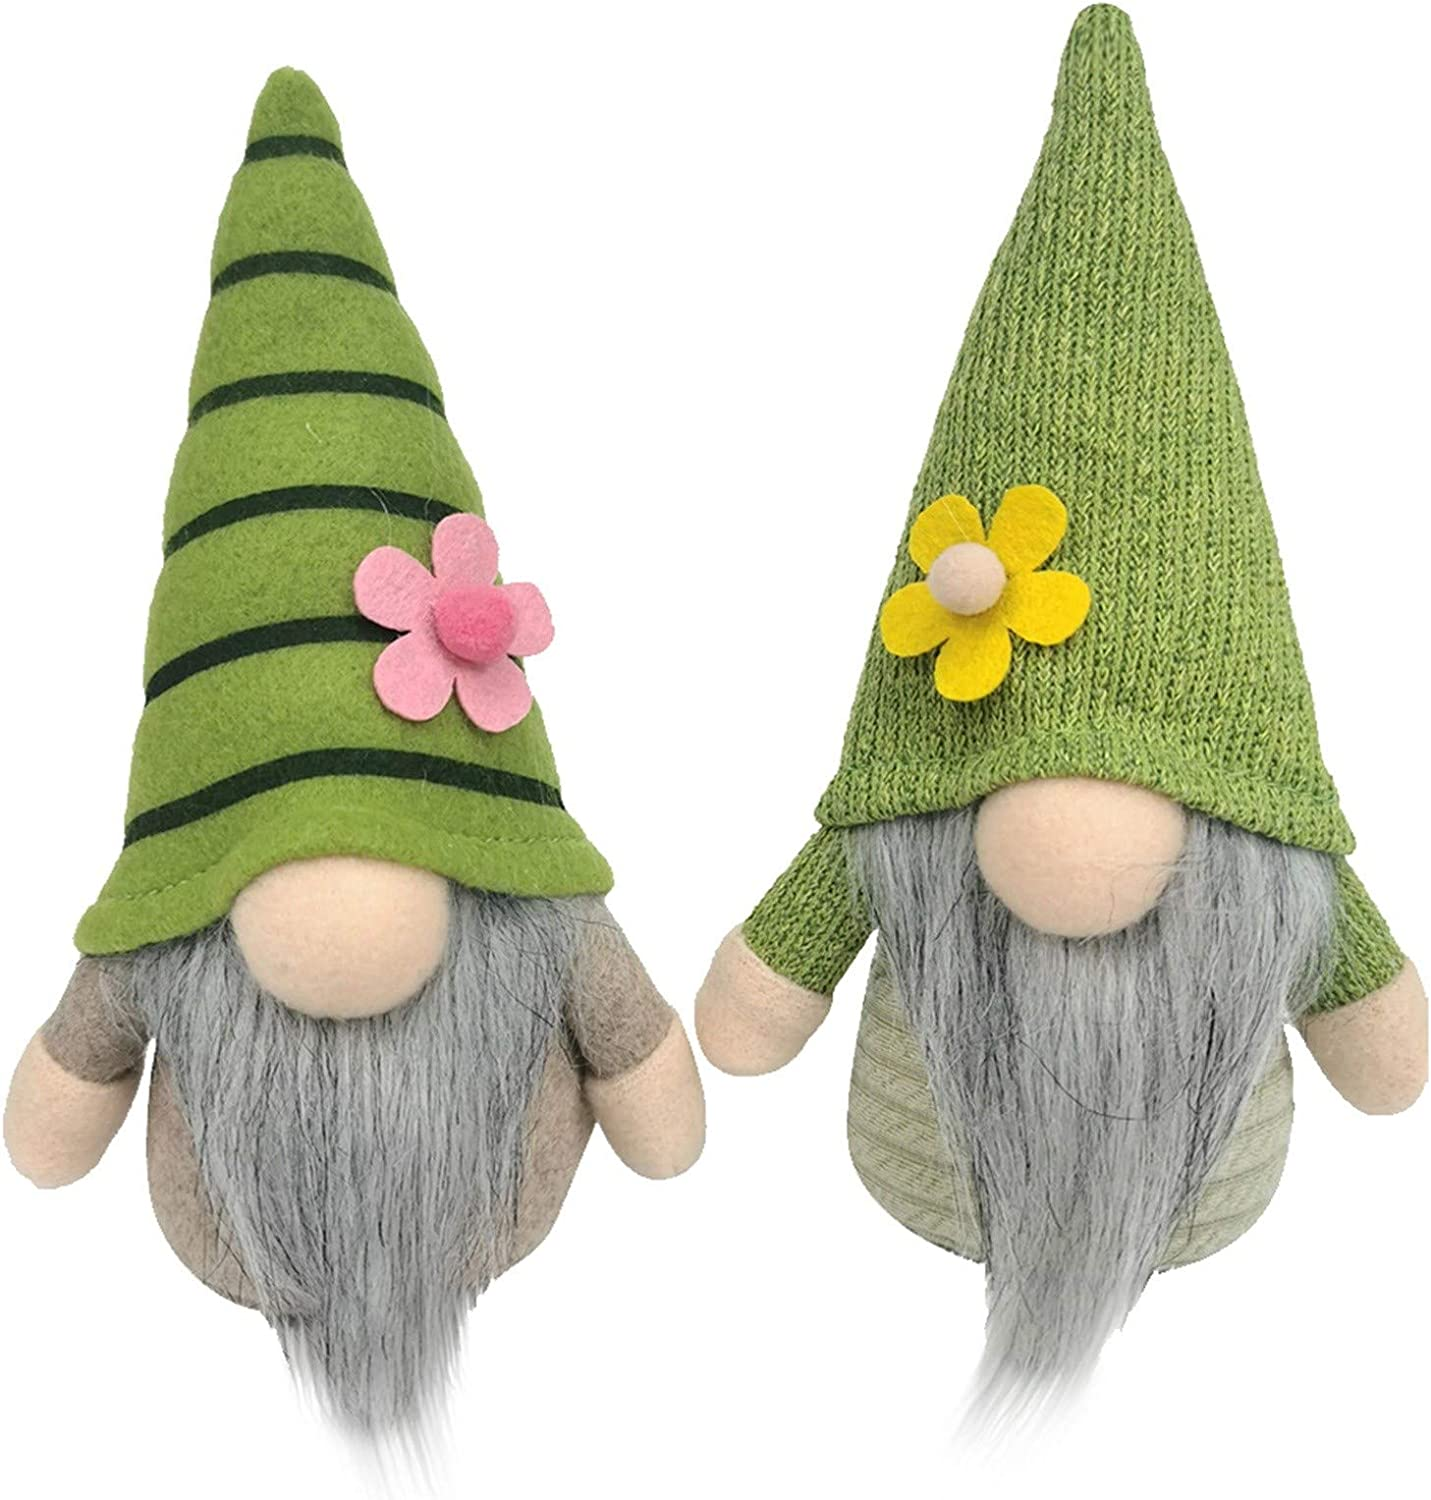 2PCS Mothers Day Gnomes Gift-Spring Flowers Dwarf Gnome Home Decoration,Easter Decorations Handmade Gnome Faceless Plush Doll